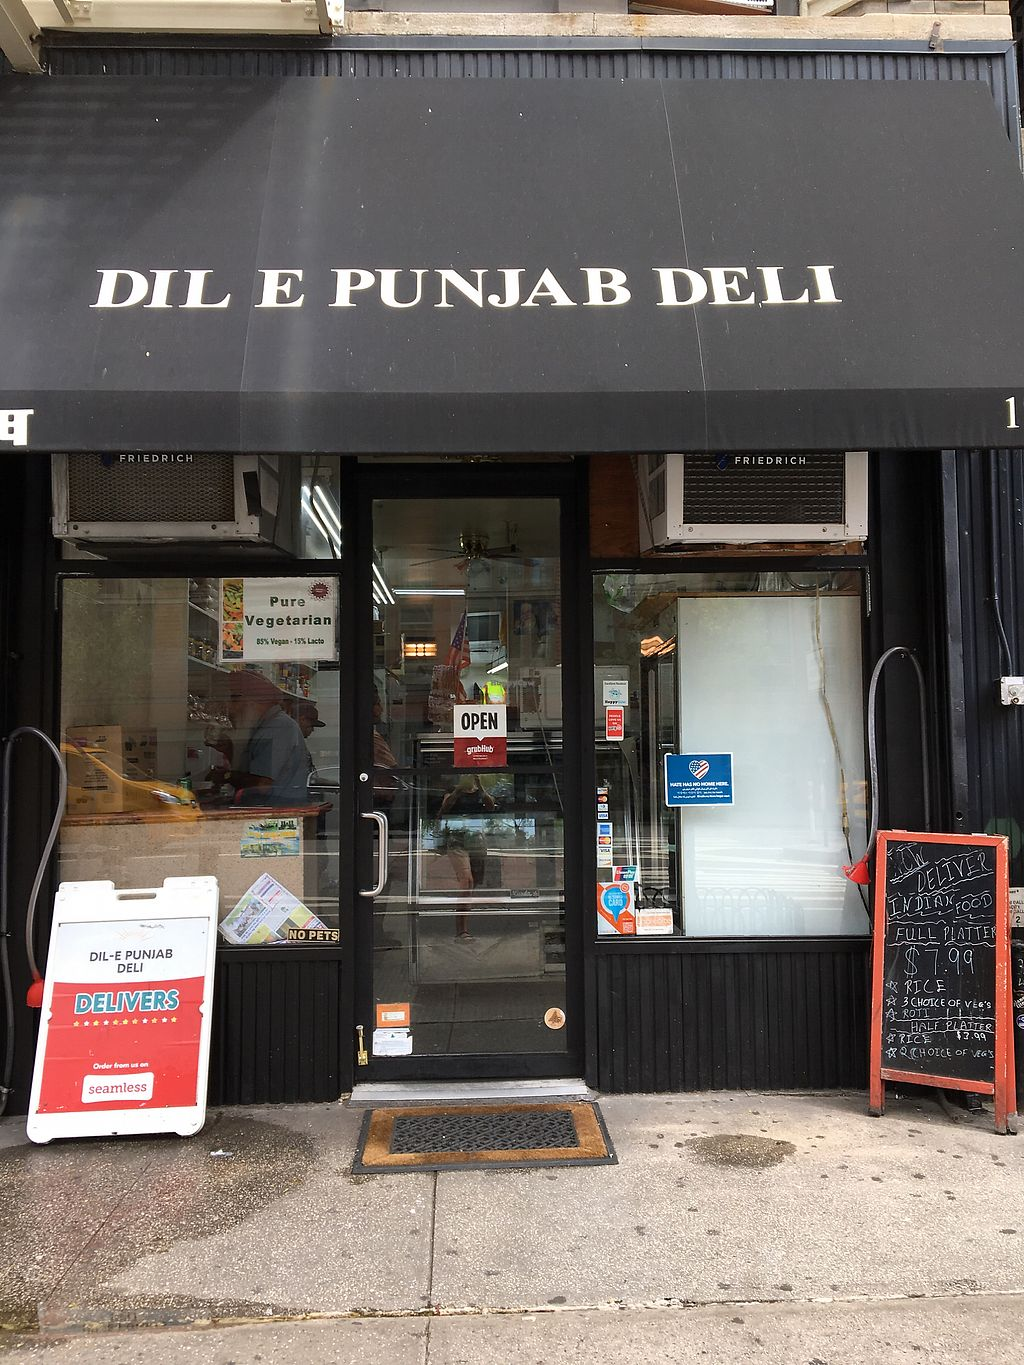 """Photo of Dil-E Punjab Deli  by <a href=""""/members/profile/JJones315"""">JJones315</a> <br/>Store Front  <br/> August 5, 2017  - <a href='/contact/abuse/image/39629/289311'>Report</a>"""